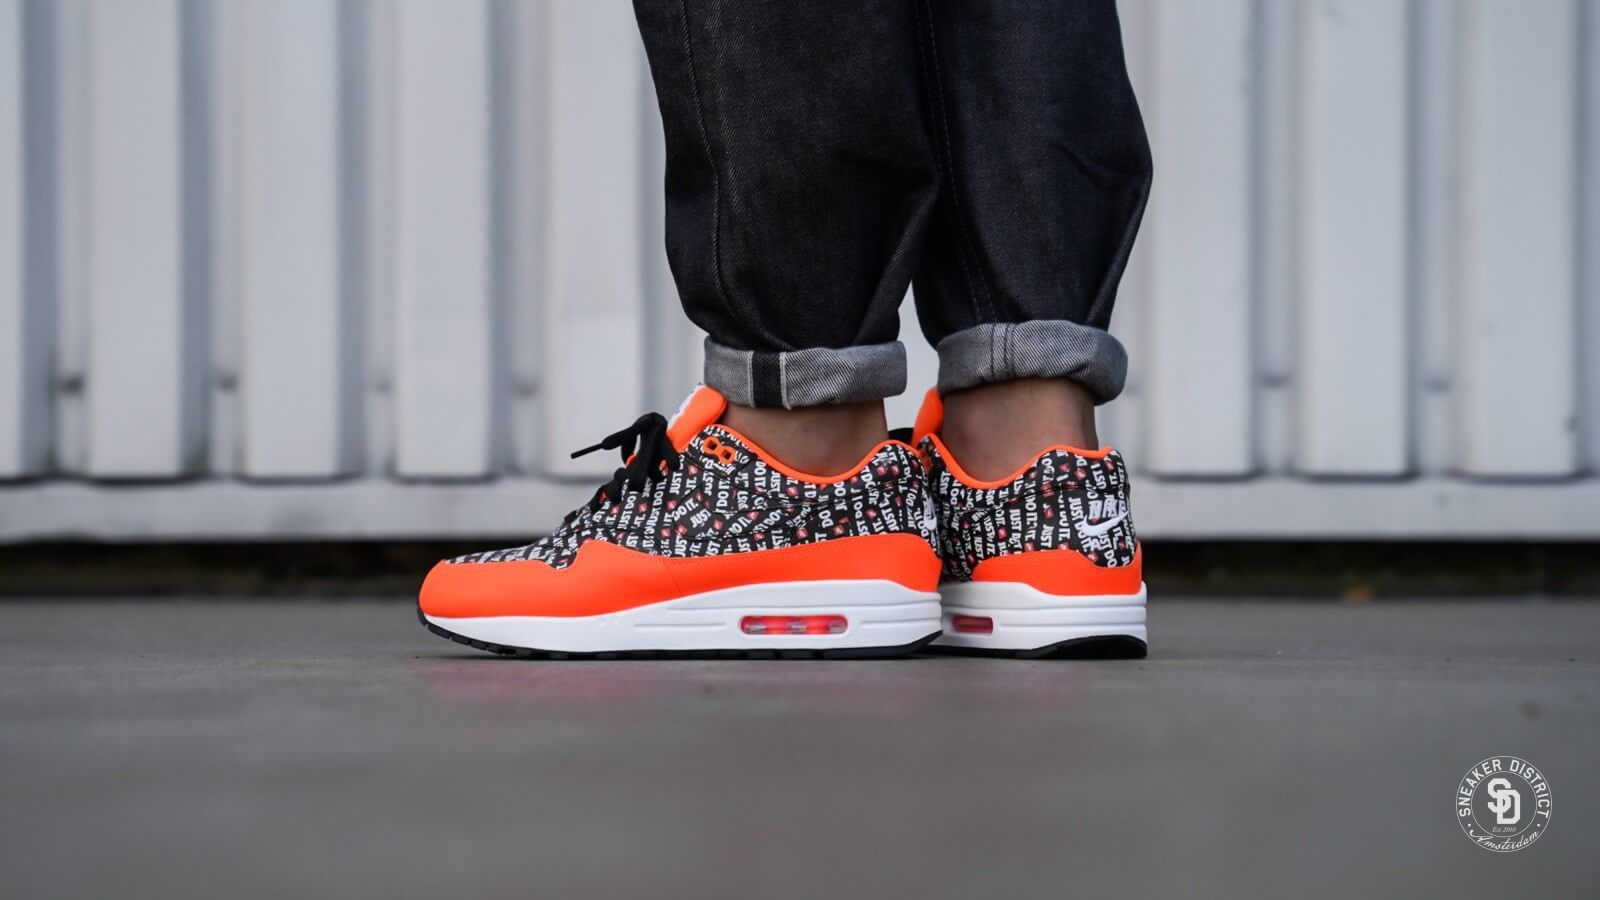 best loved 1312d 999e7 Pin by The Sole Supplier on Exclusive New Releases   Nike, Nike air max, Air  max 1